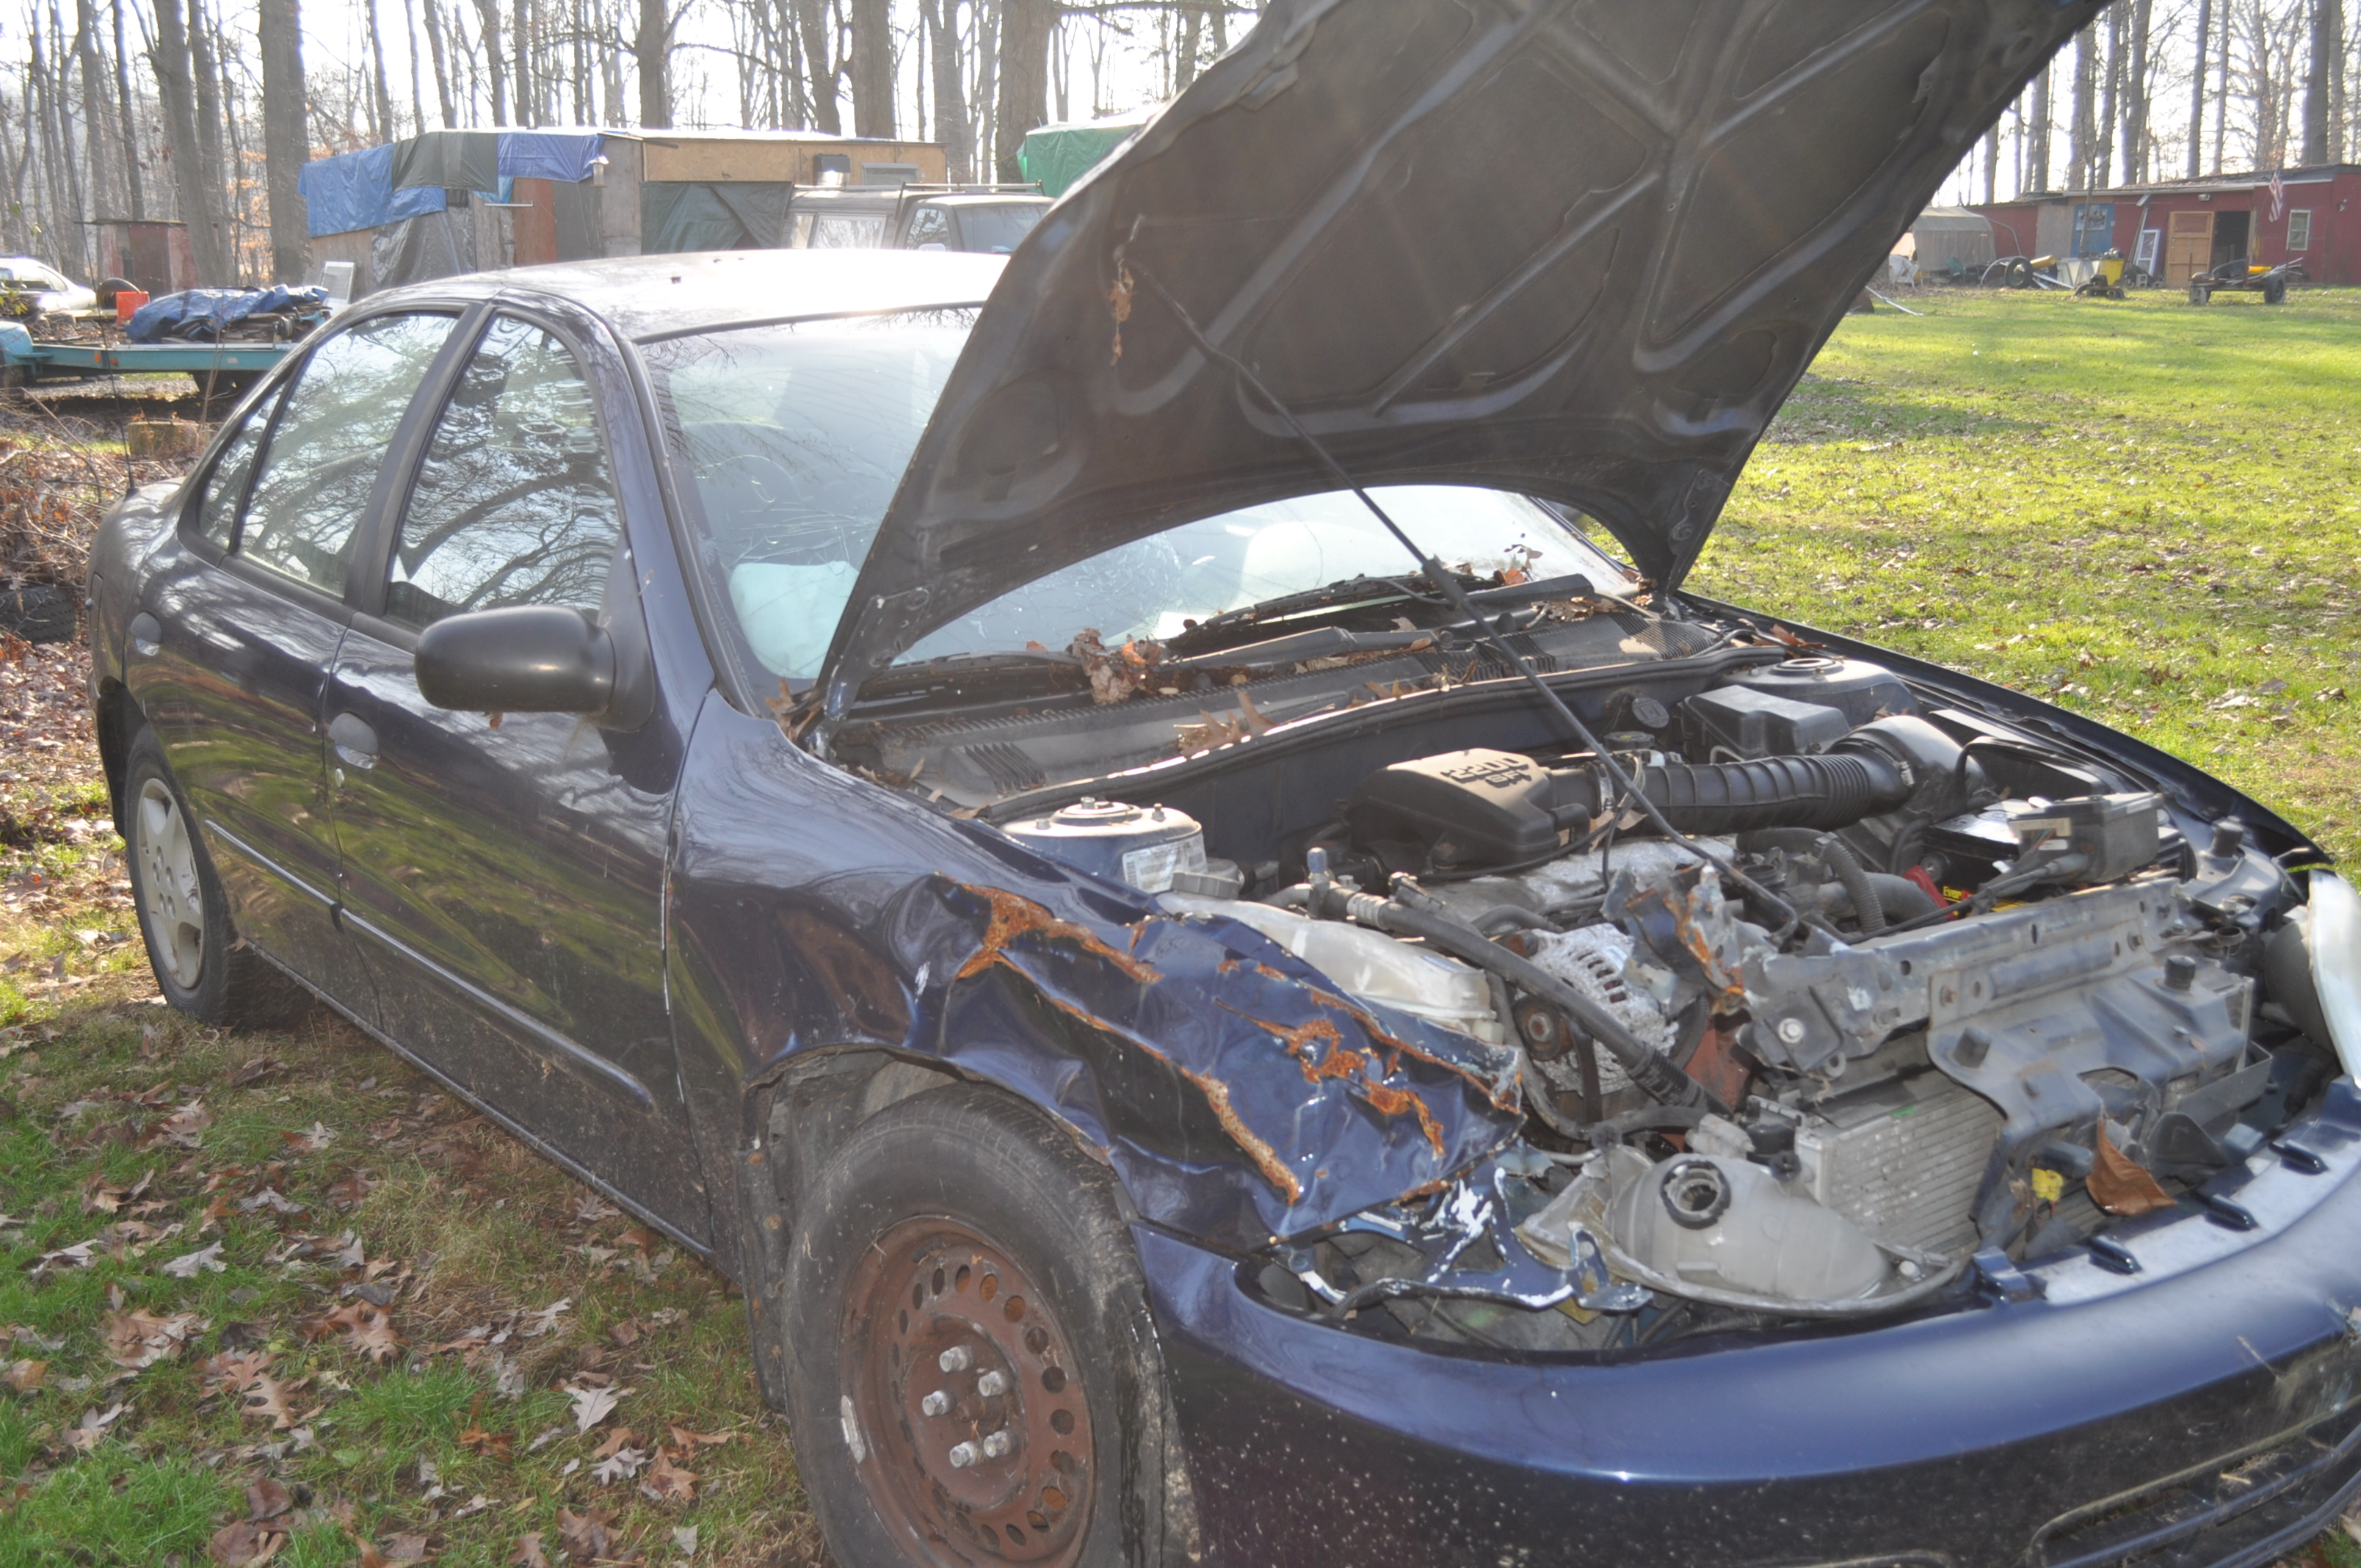 Cash for Cars Urbandale, IA | Sell Your Junk Car | The Clunker Junker